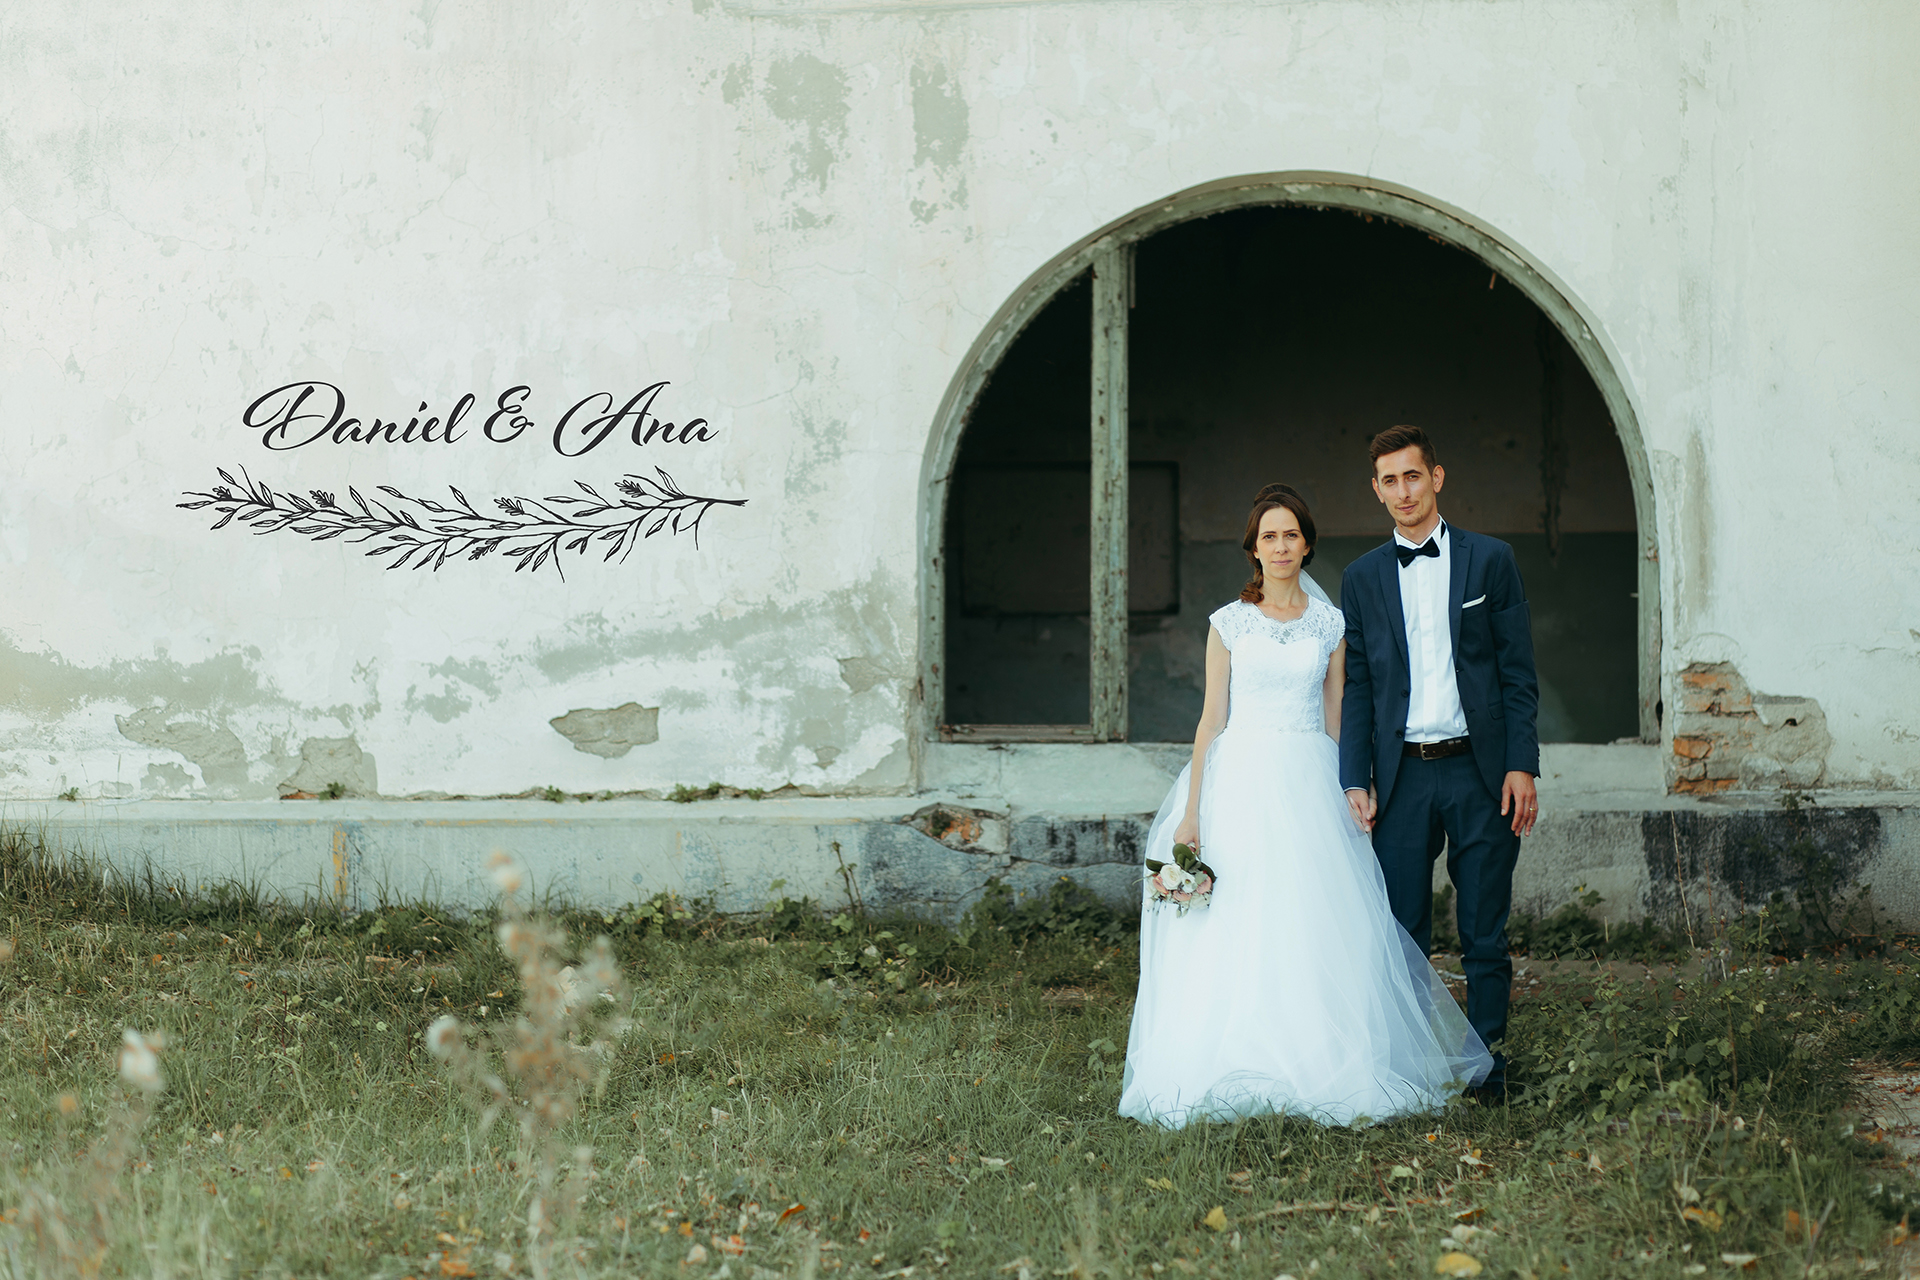 Daniel & Ana - Wedding